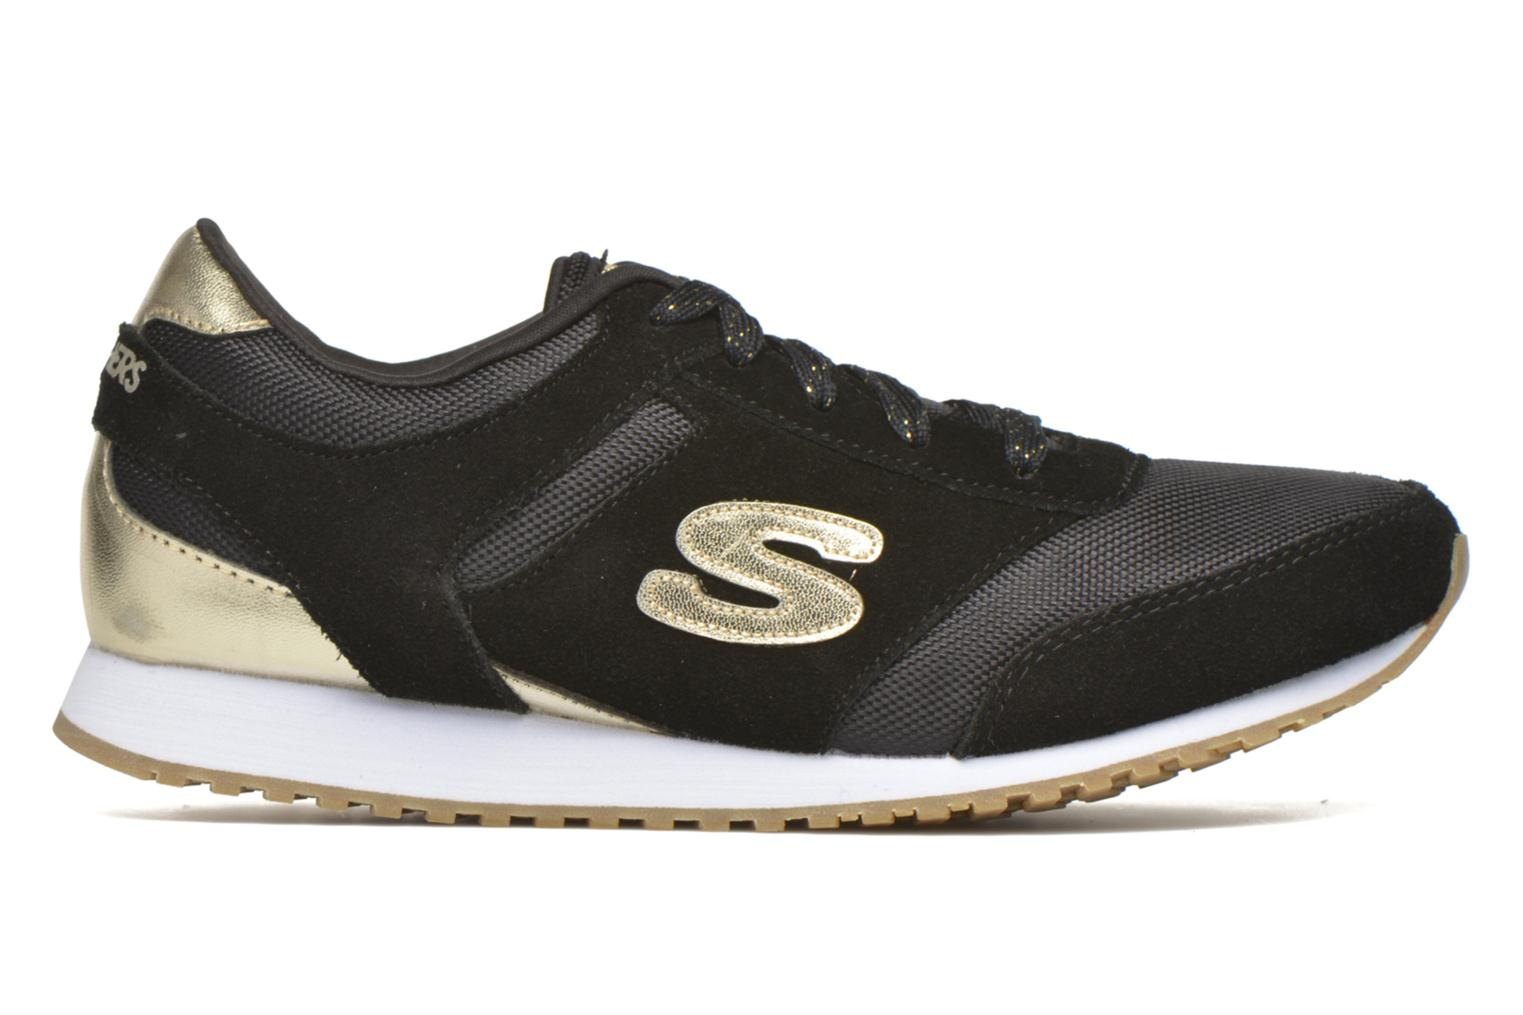 OG 78 - Gold Fever Black/ Gold